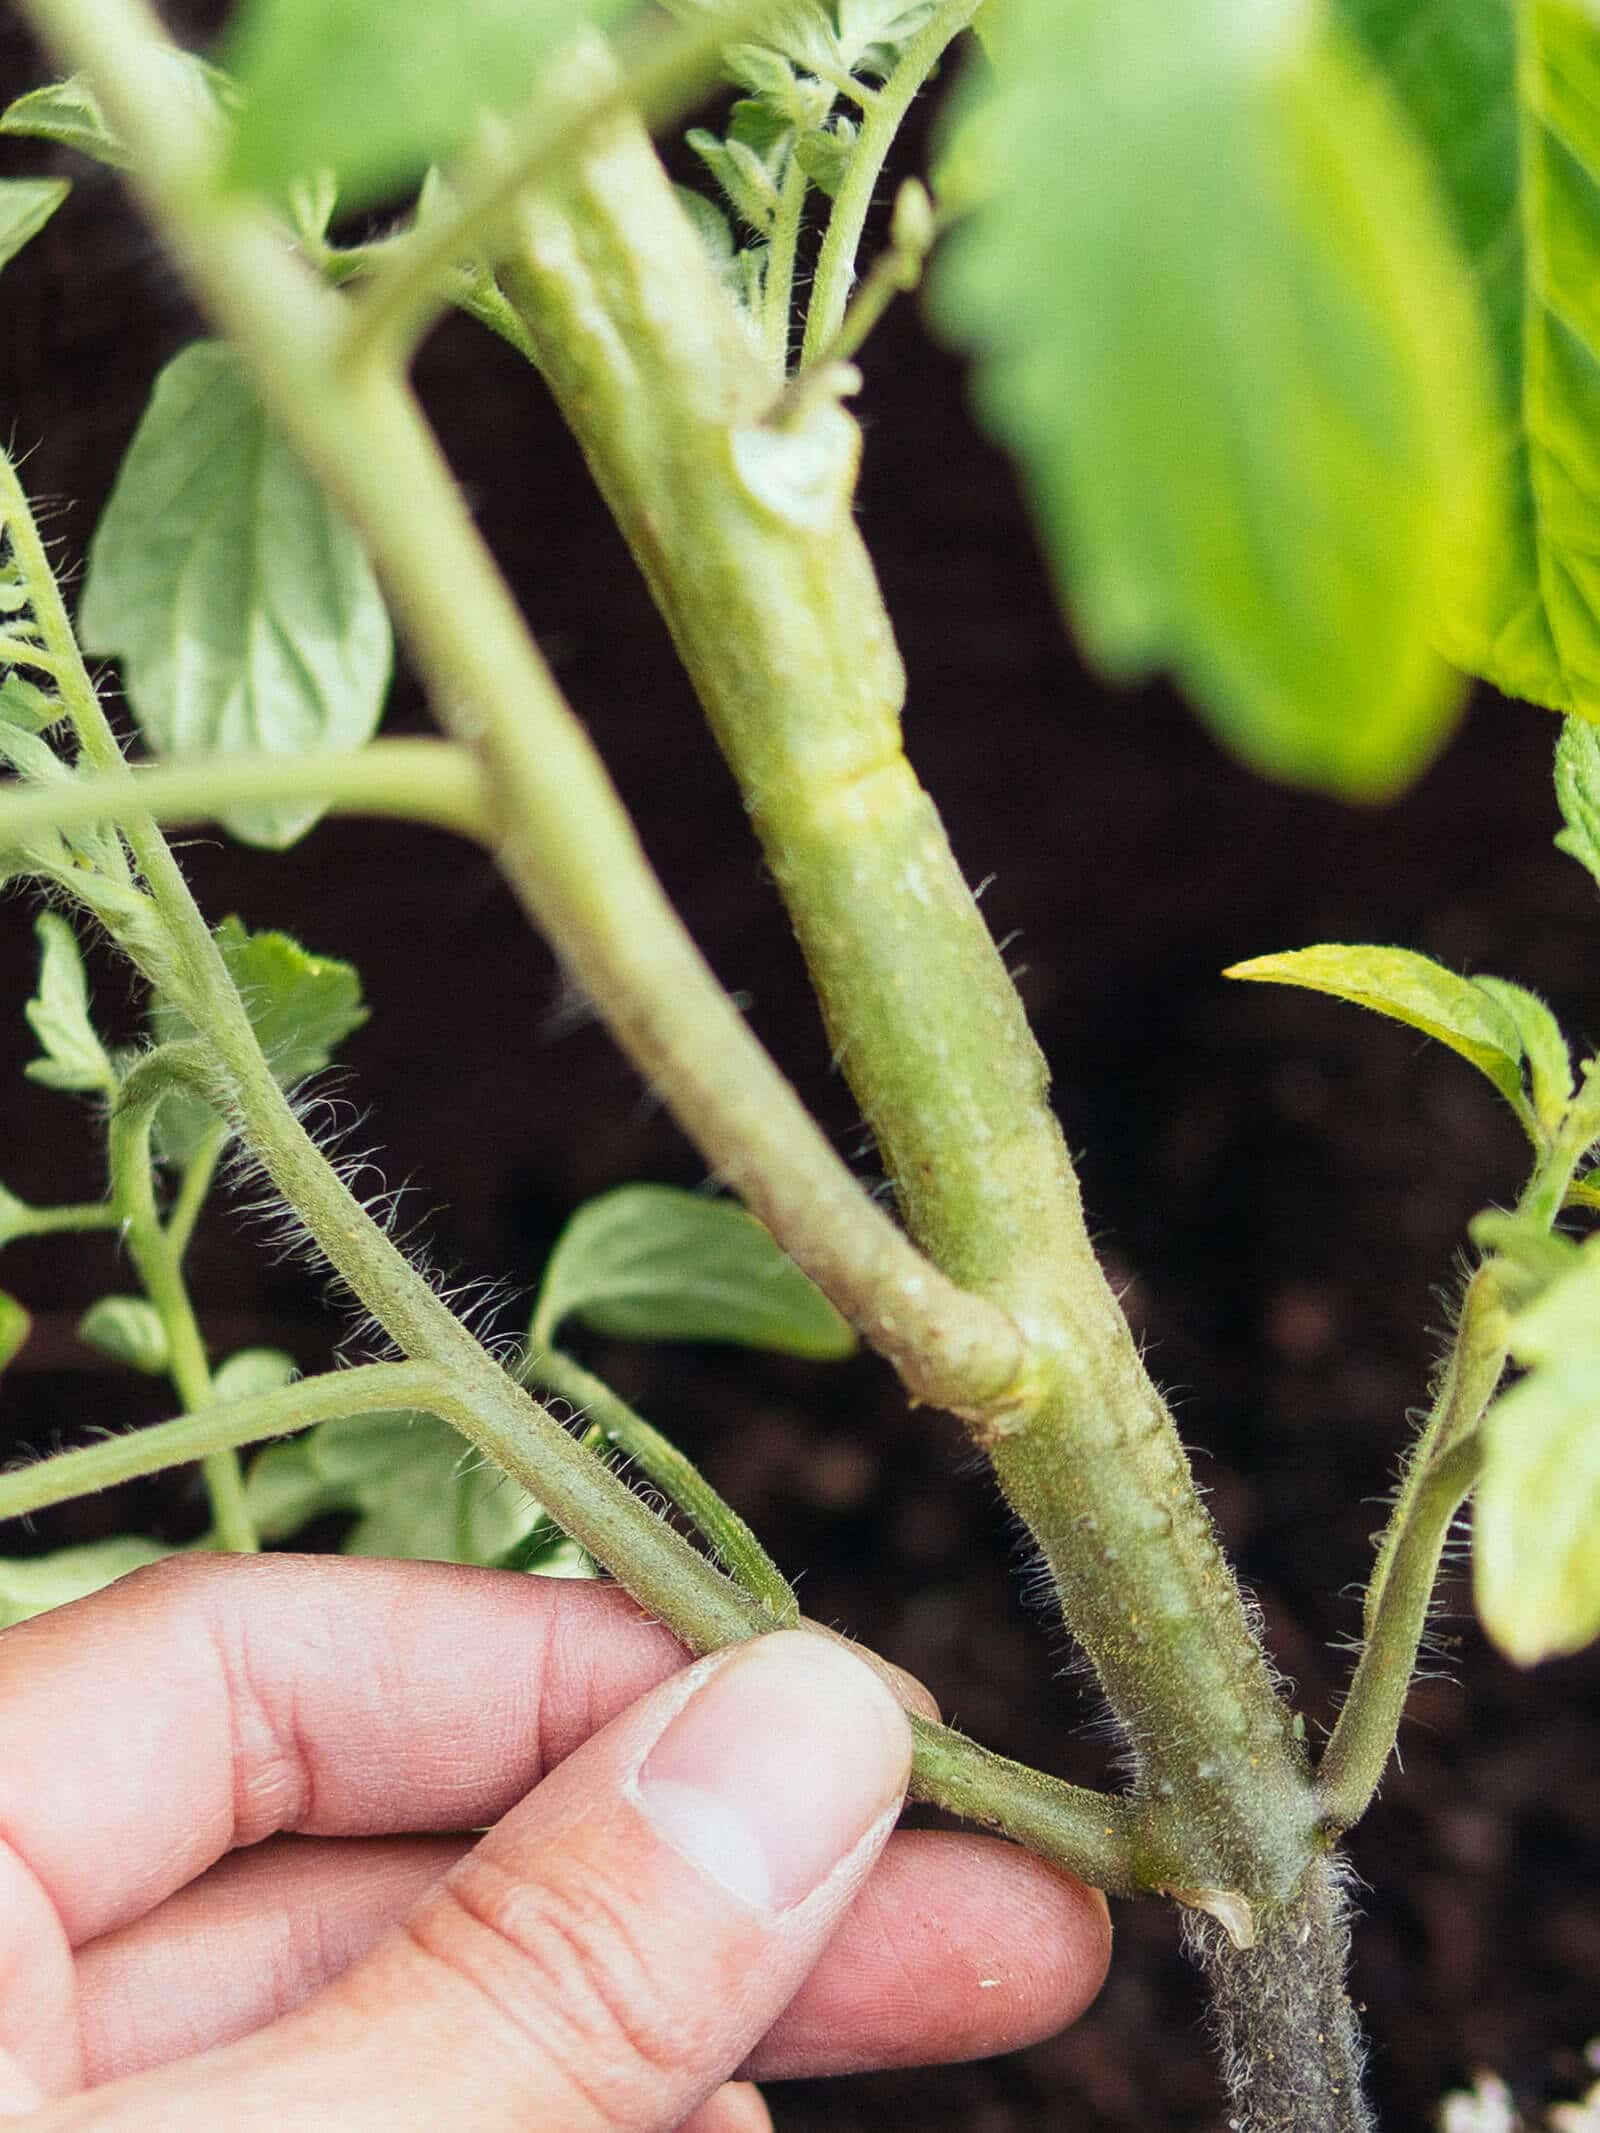 Each tiny bump on a tomato stem has the ability to form an adventitious root